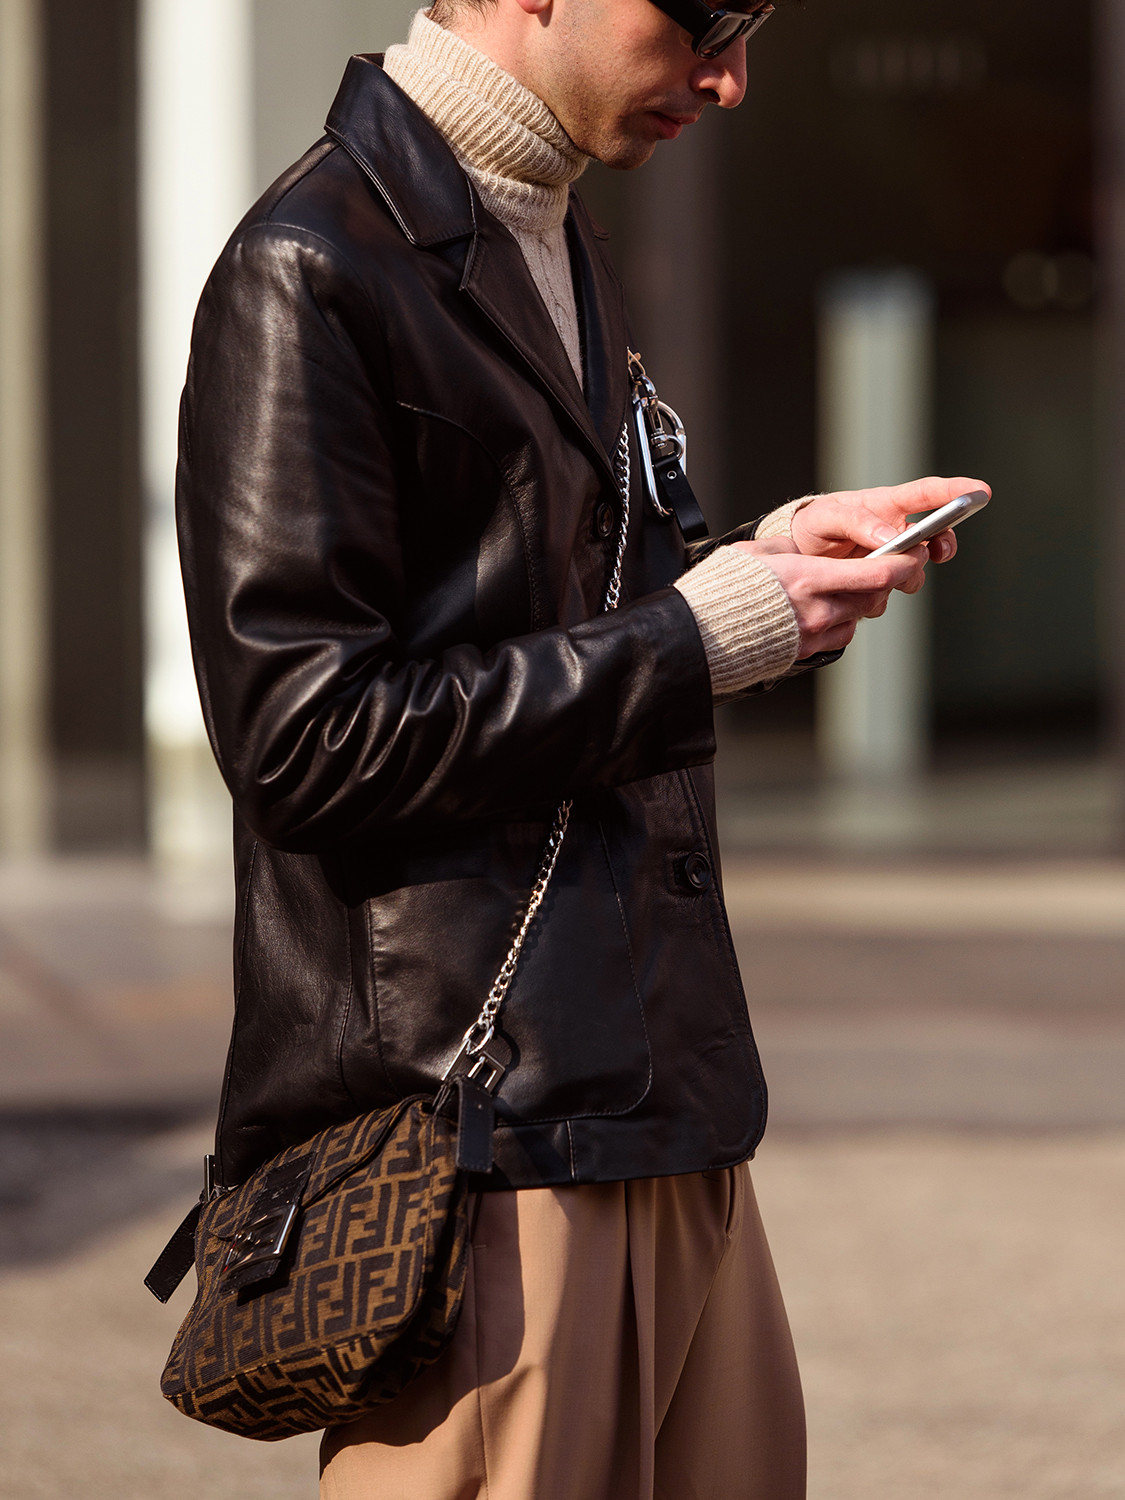 Men's outfit idea for 2021 with brown leather jacket, neutral lightweight rollneck jumper, neutral chinos, black sunglasses, converse. Suitable for autumn and winter.